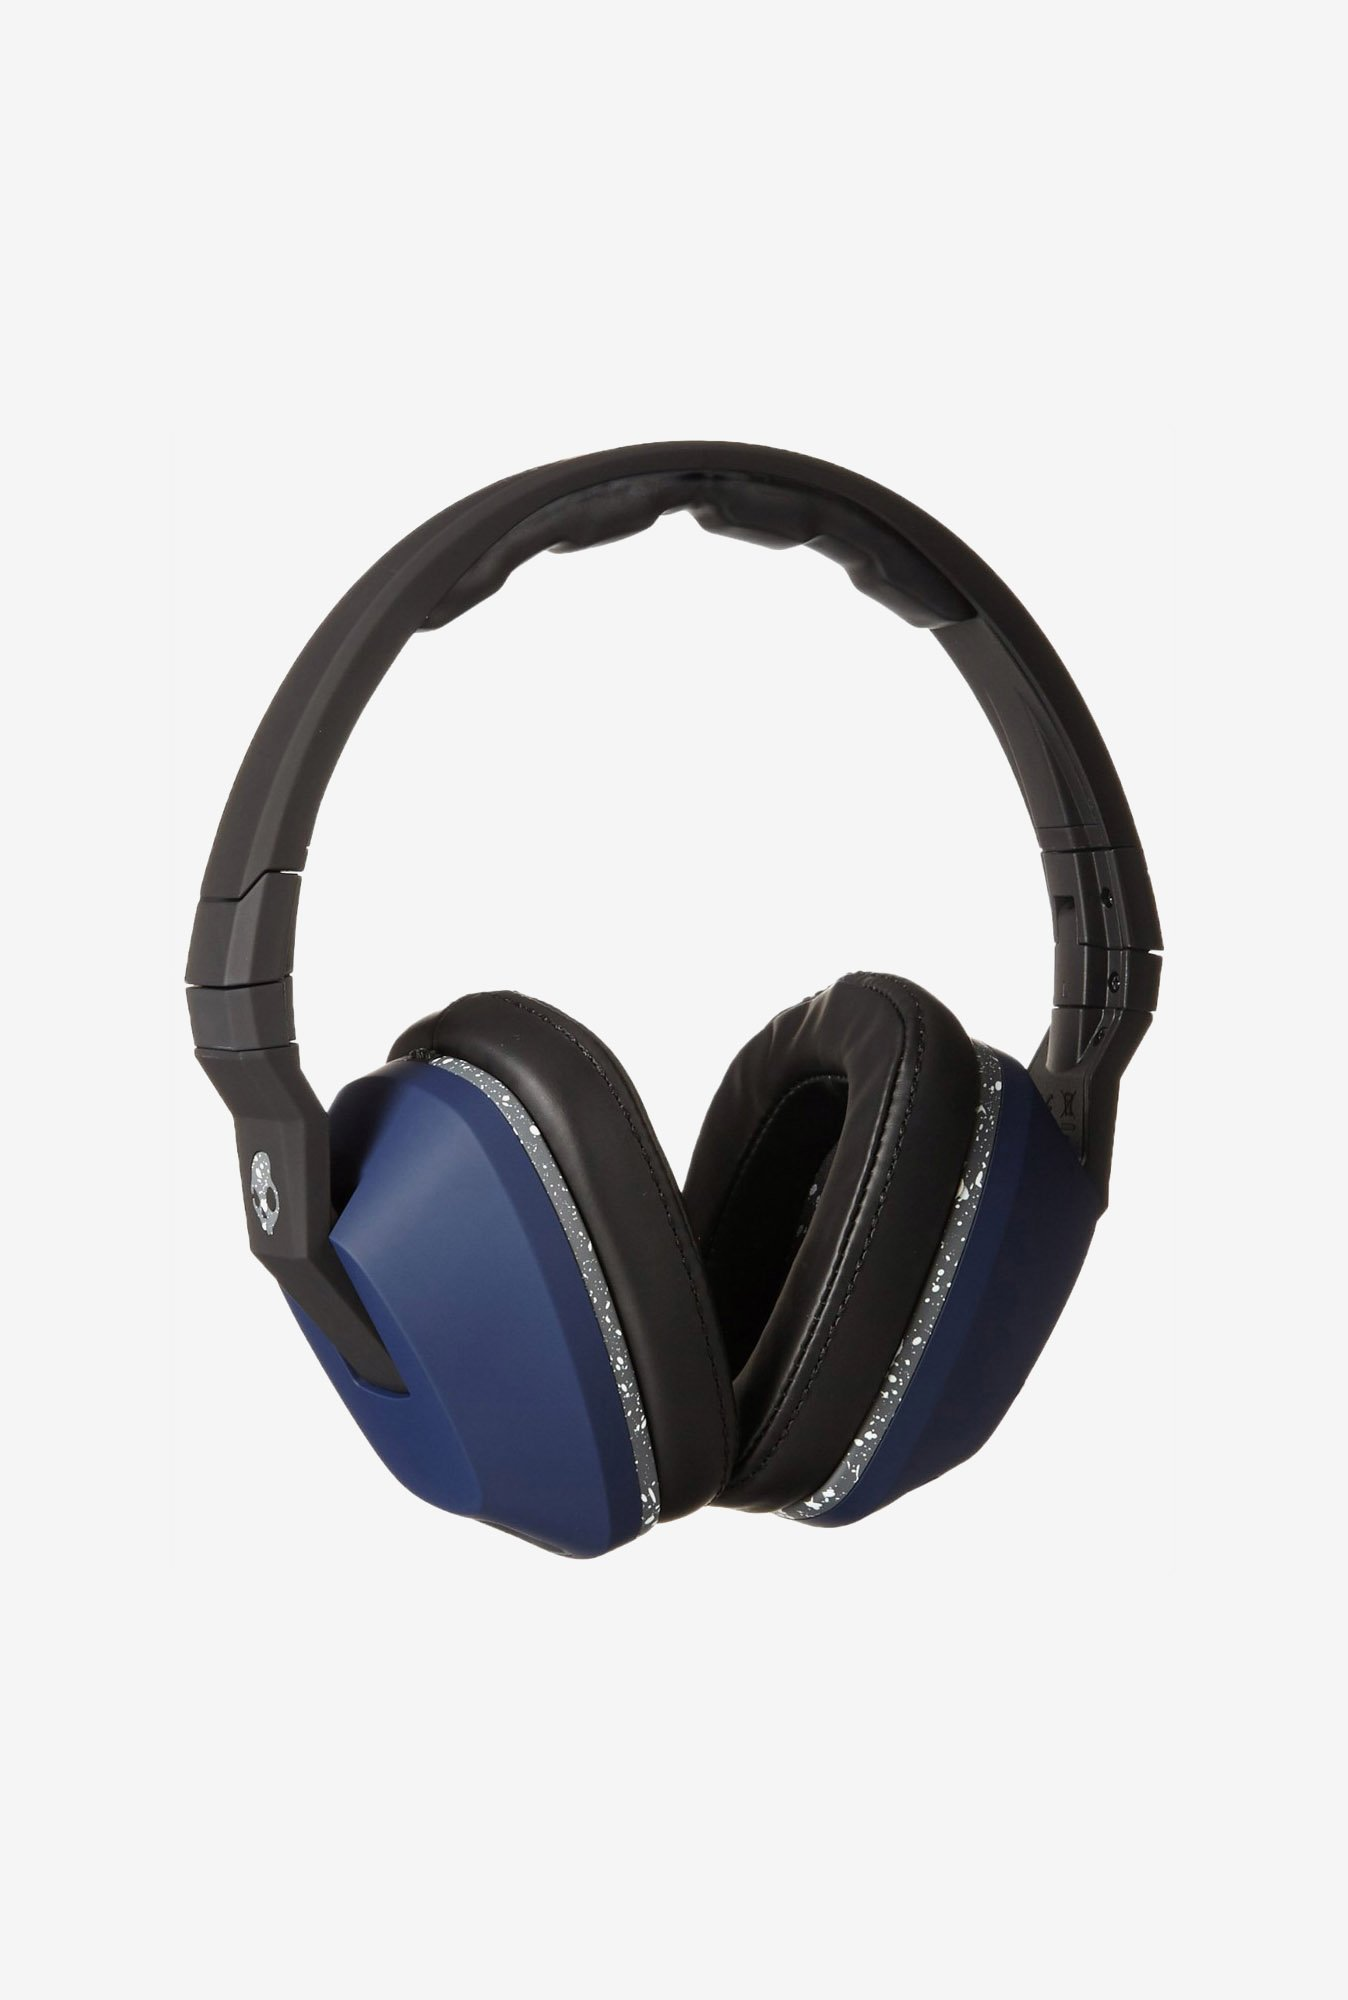 Skullcandy Crusher S6SCGY-442 Headphone Navy and Black